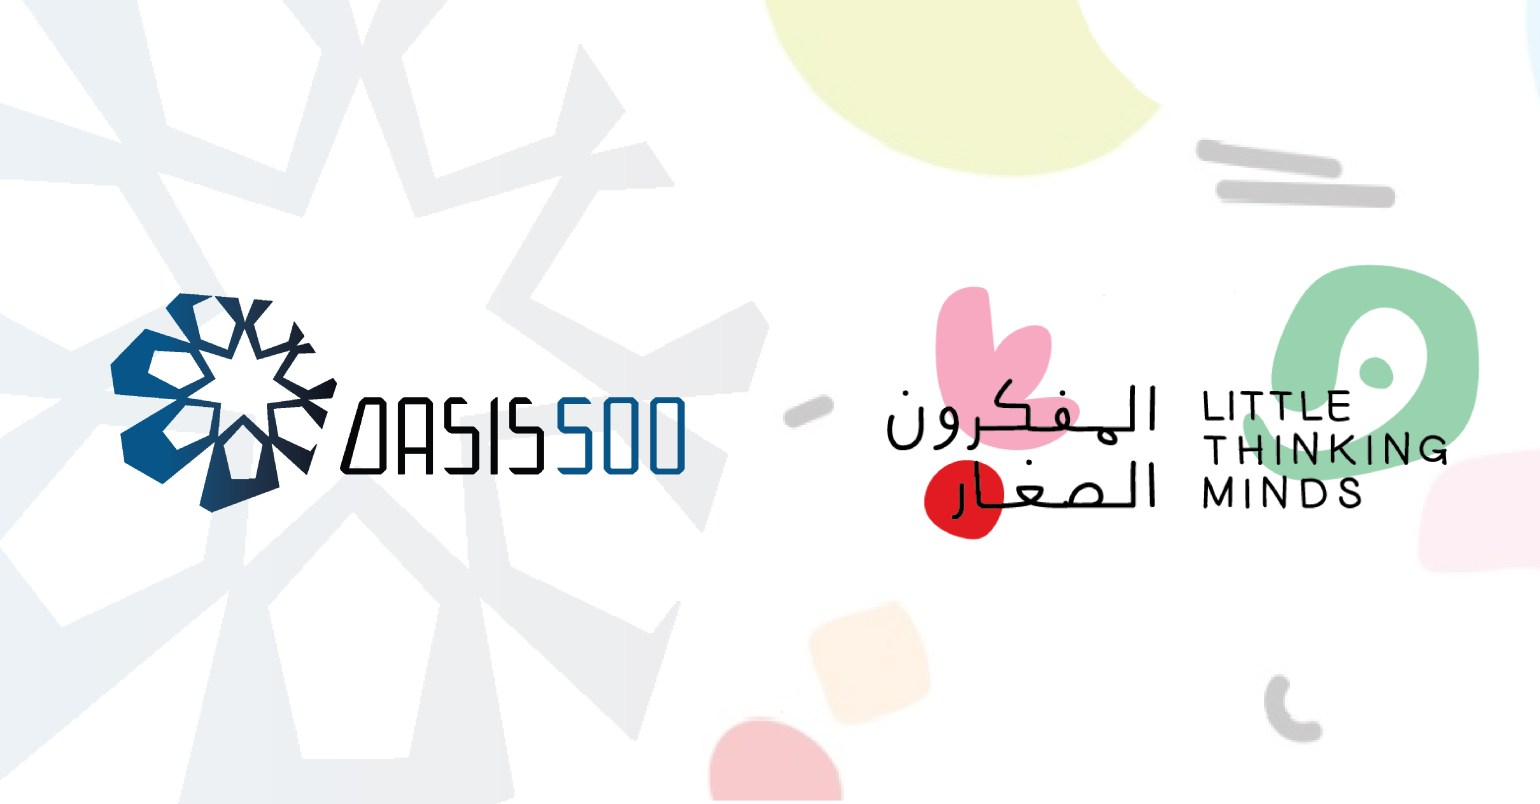 Oasis500 partially withdraws from Little Thinking Minds